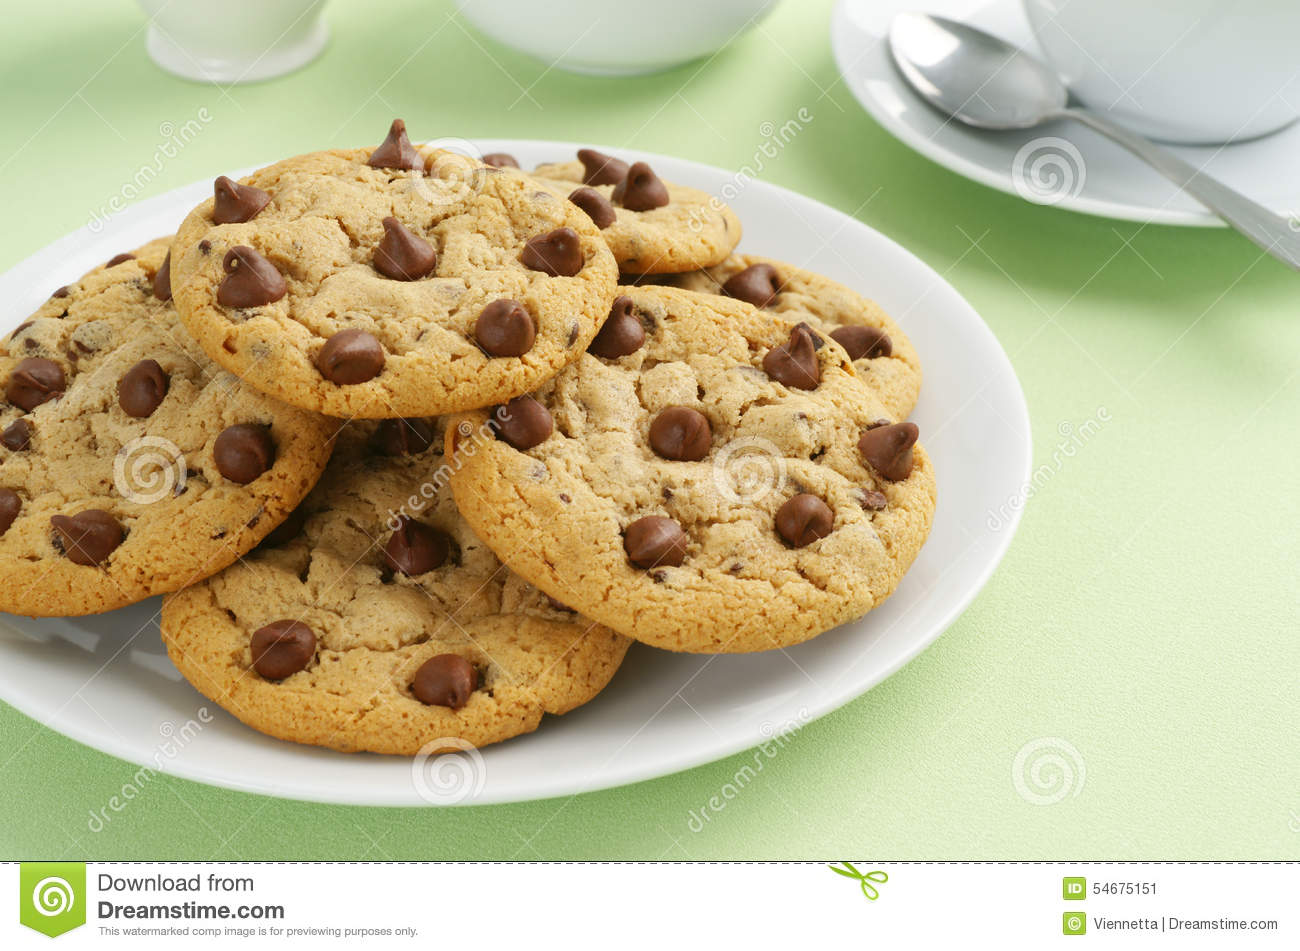 Chocolate Chip Cookies With Tea Or Coffee Stock Photo - Image ...